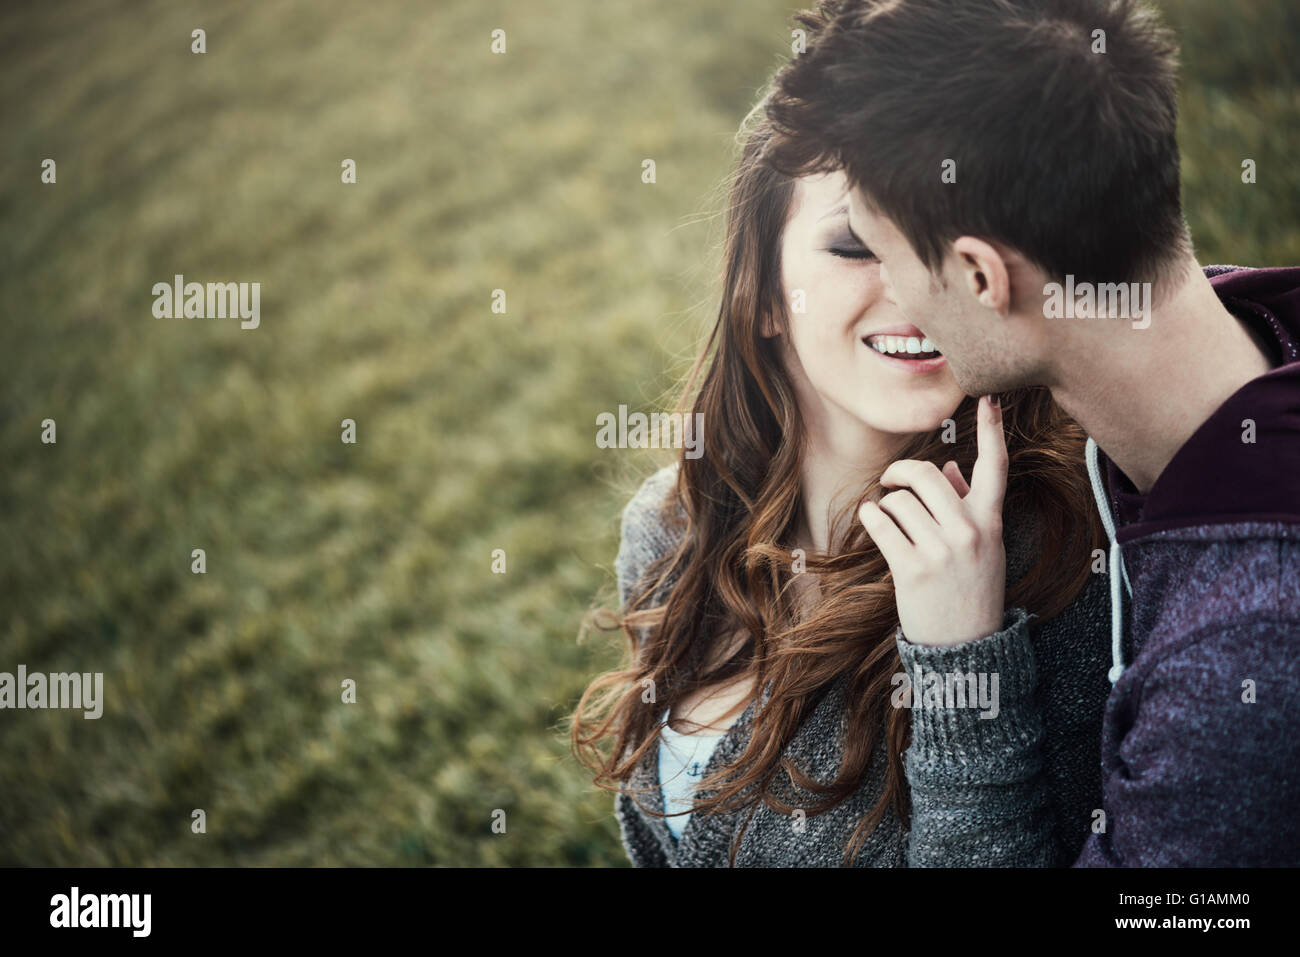 Young loving couple sitting on grass, she is flirting with him, love and relationships concept - Stock Image